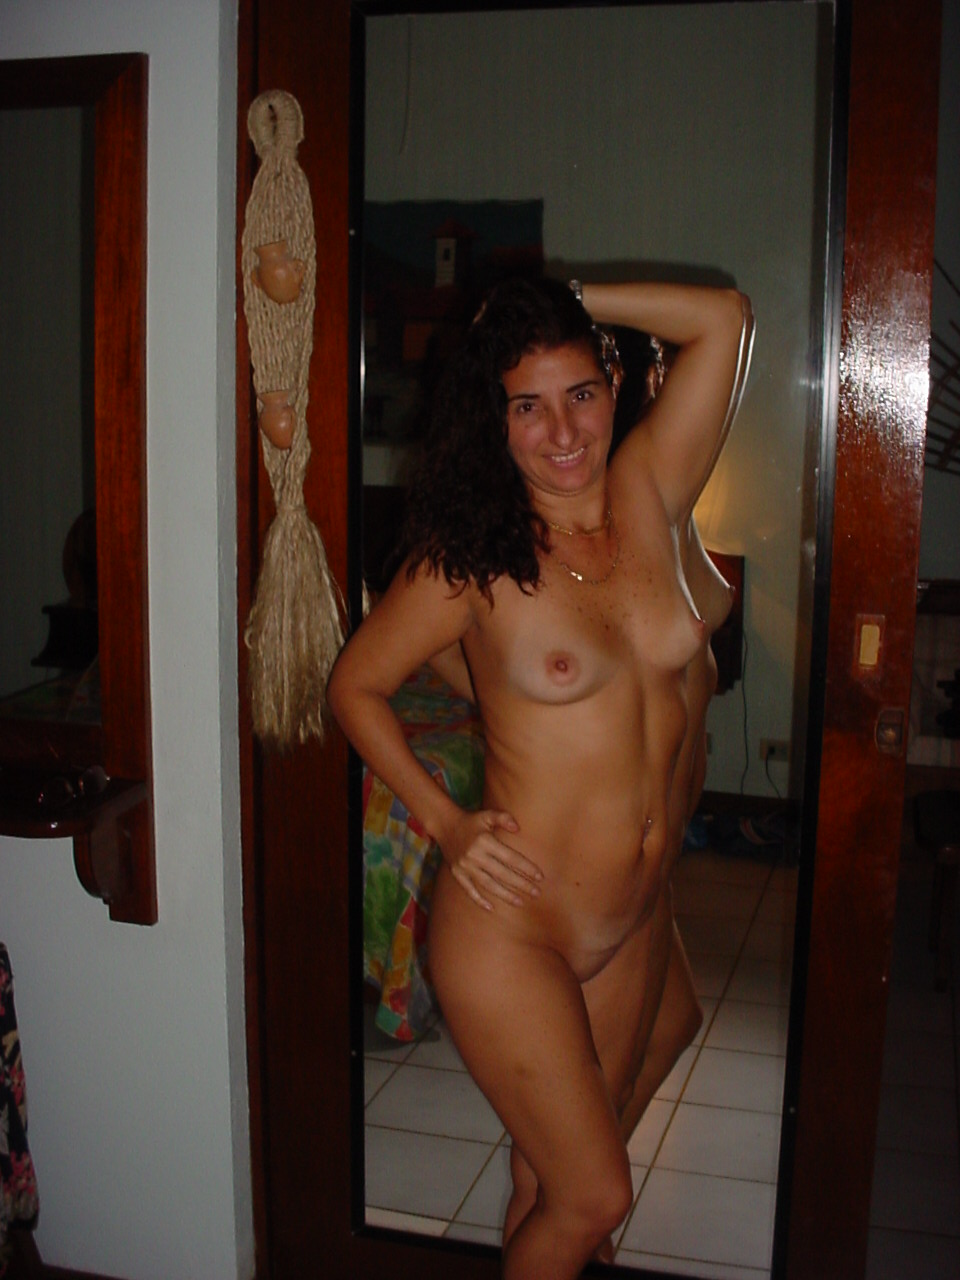 Remarkable, the coasta rica pussy nude the phrase